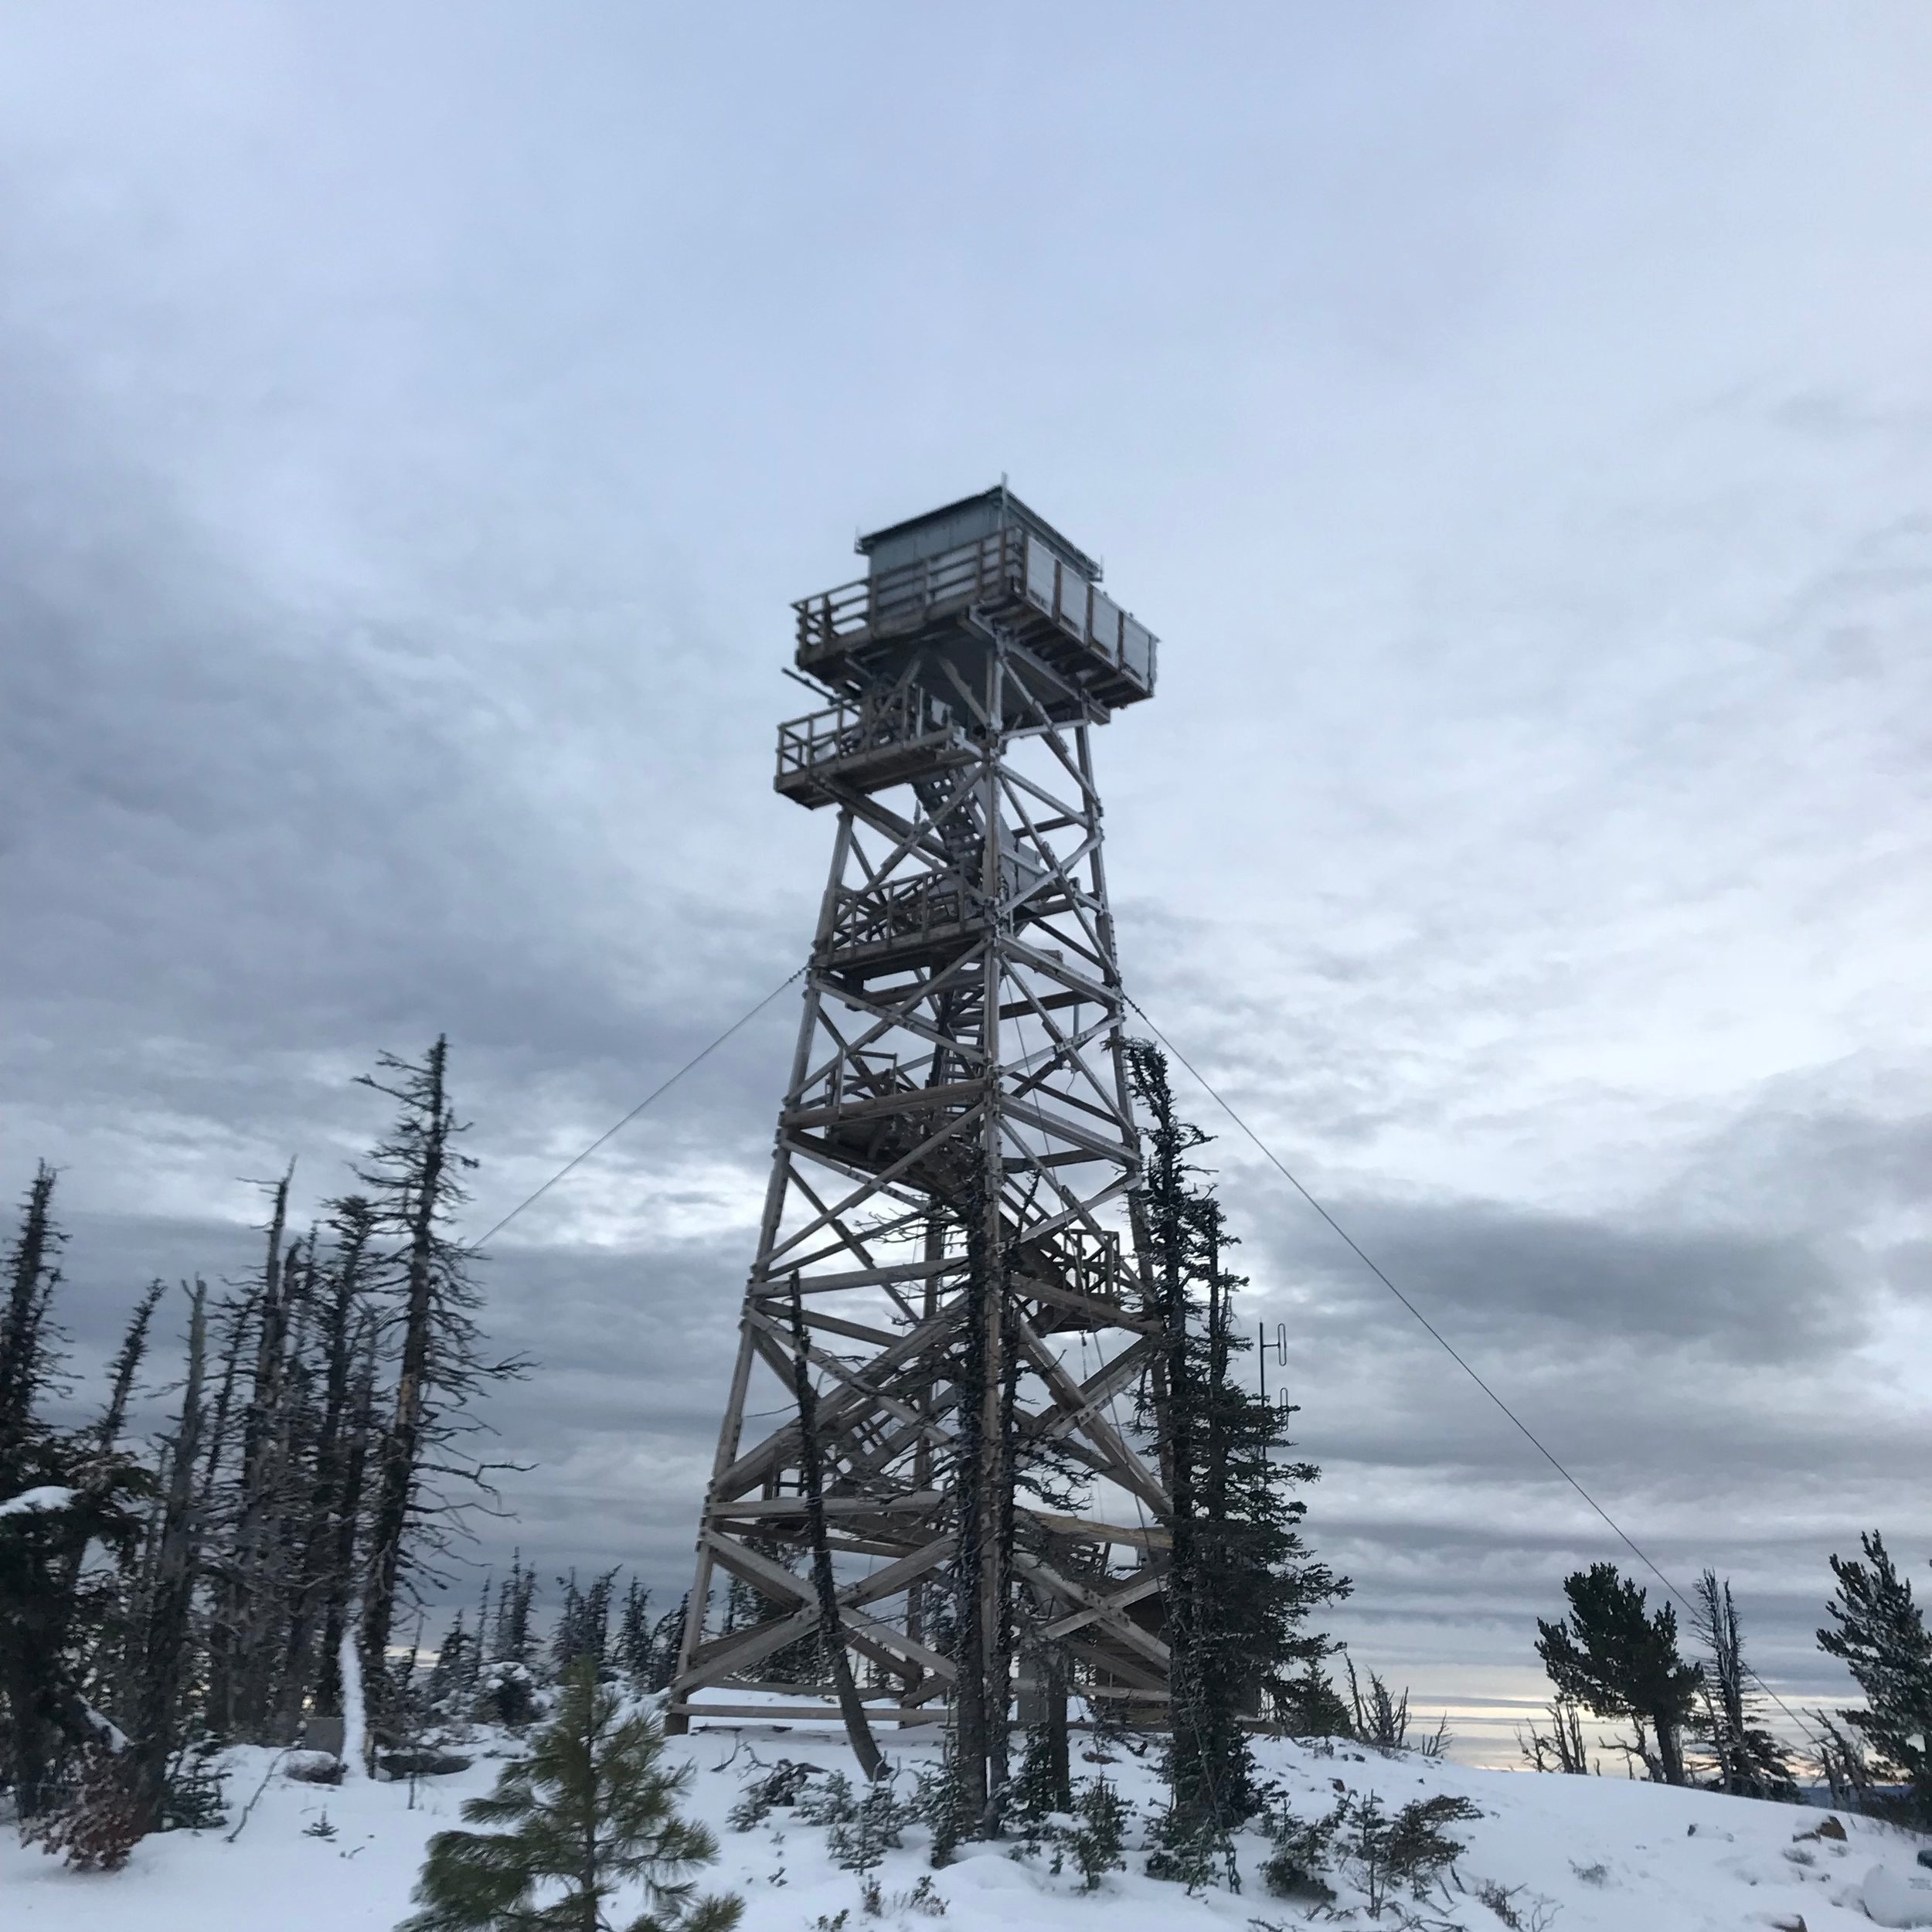 One of two old fire lookouts at the top.